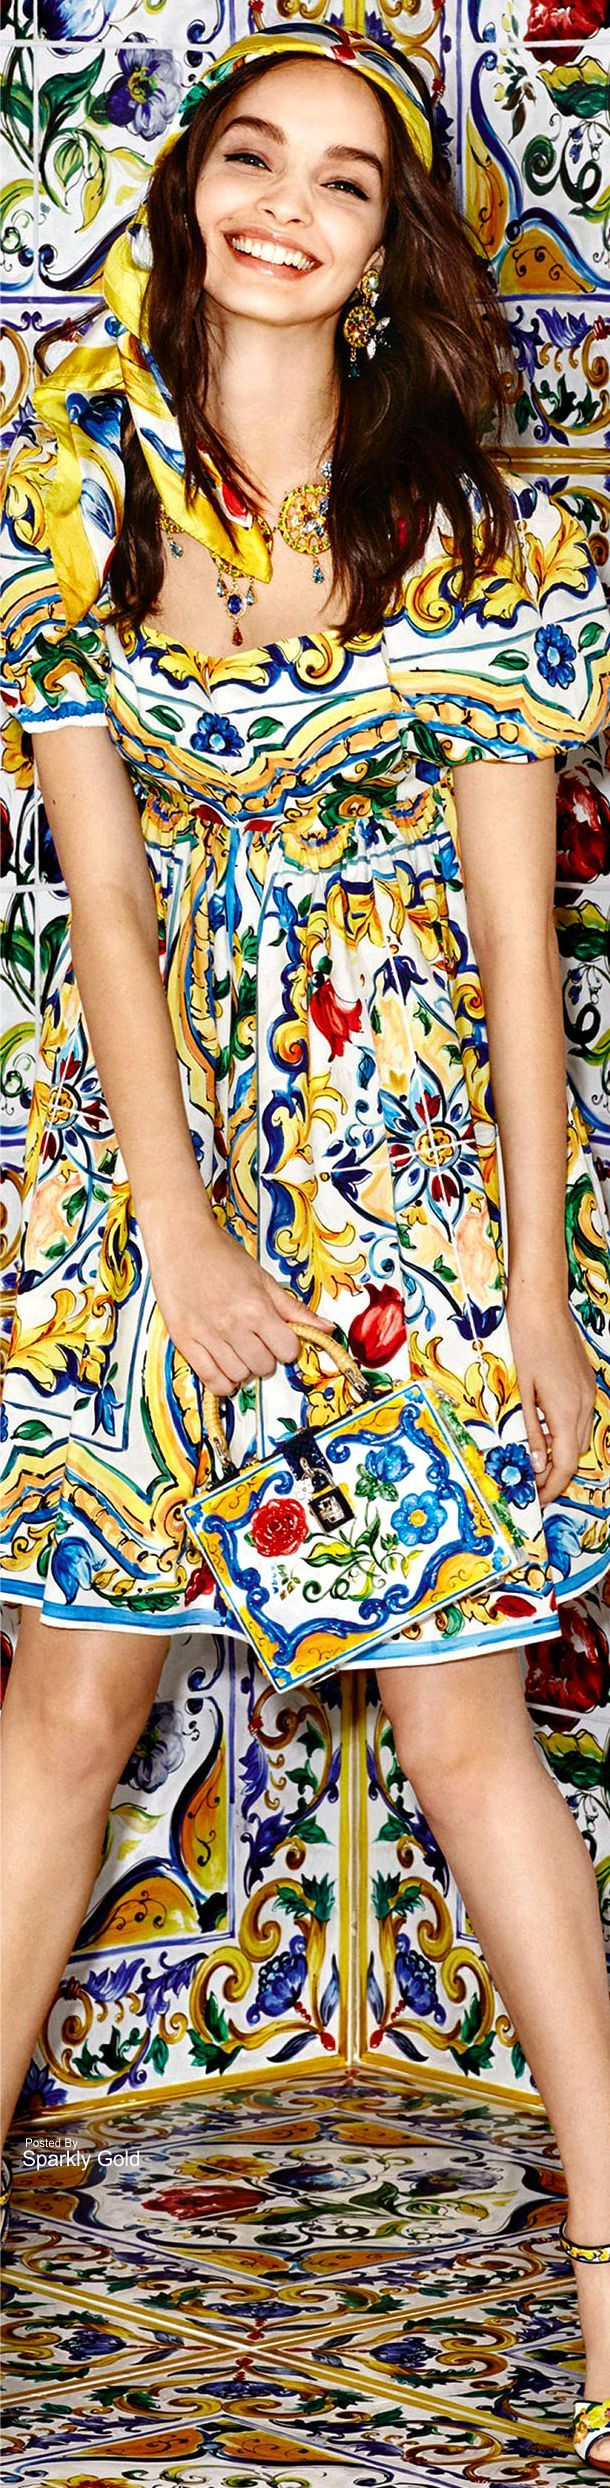 Majolica fabric -- wow, why didn't somebody think of this before?  From Dolce & Gabbana Fall 2016 Majolica Collection.